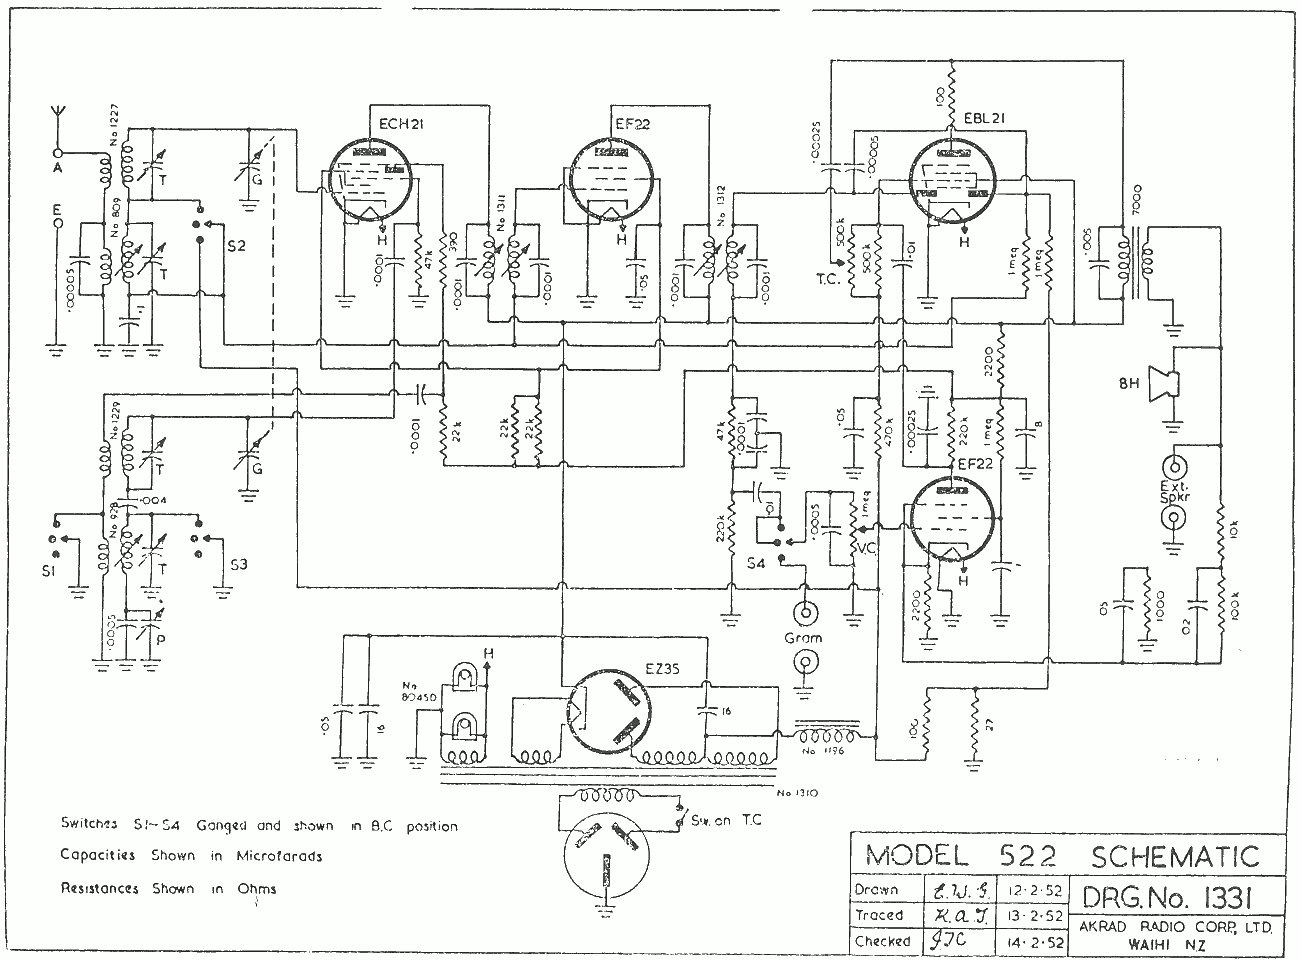 1952 Pacific (Post-WWII) model 522 Schematic